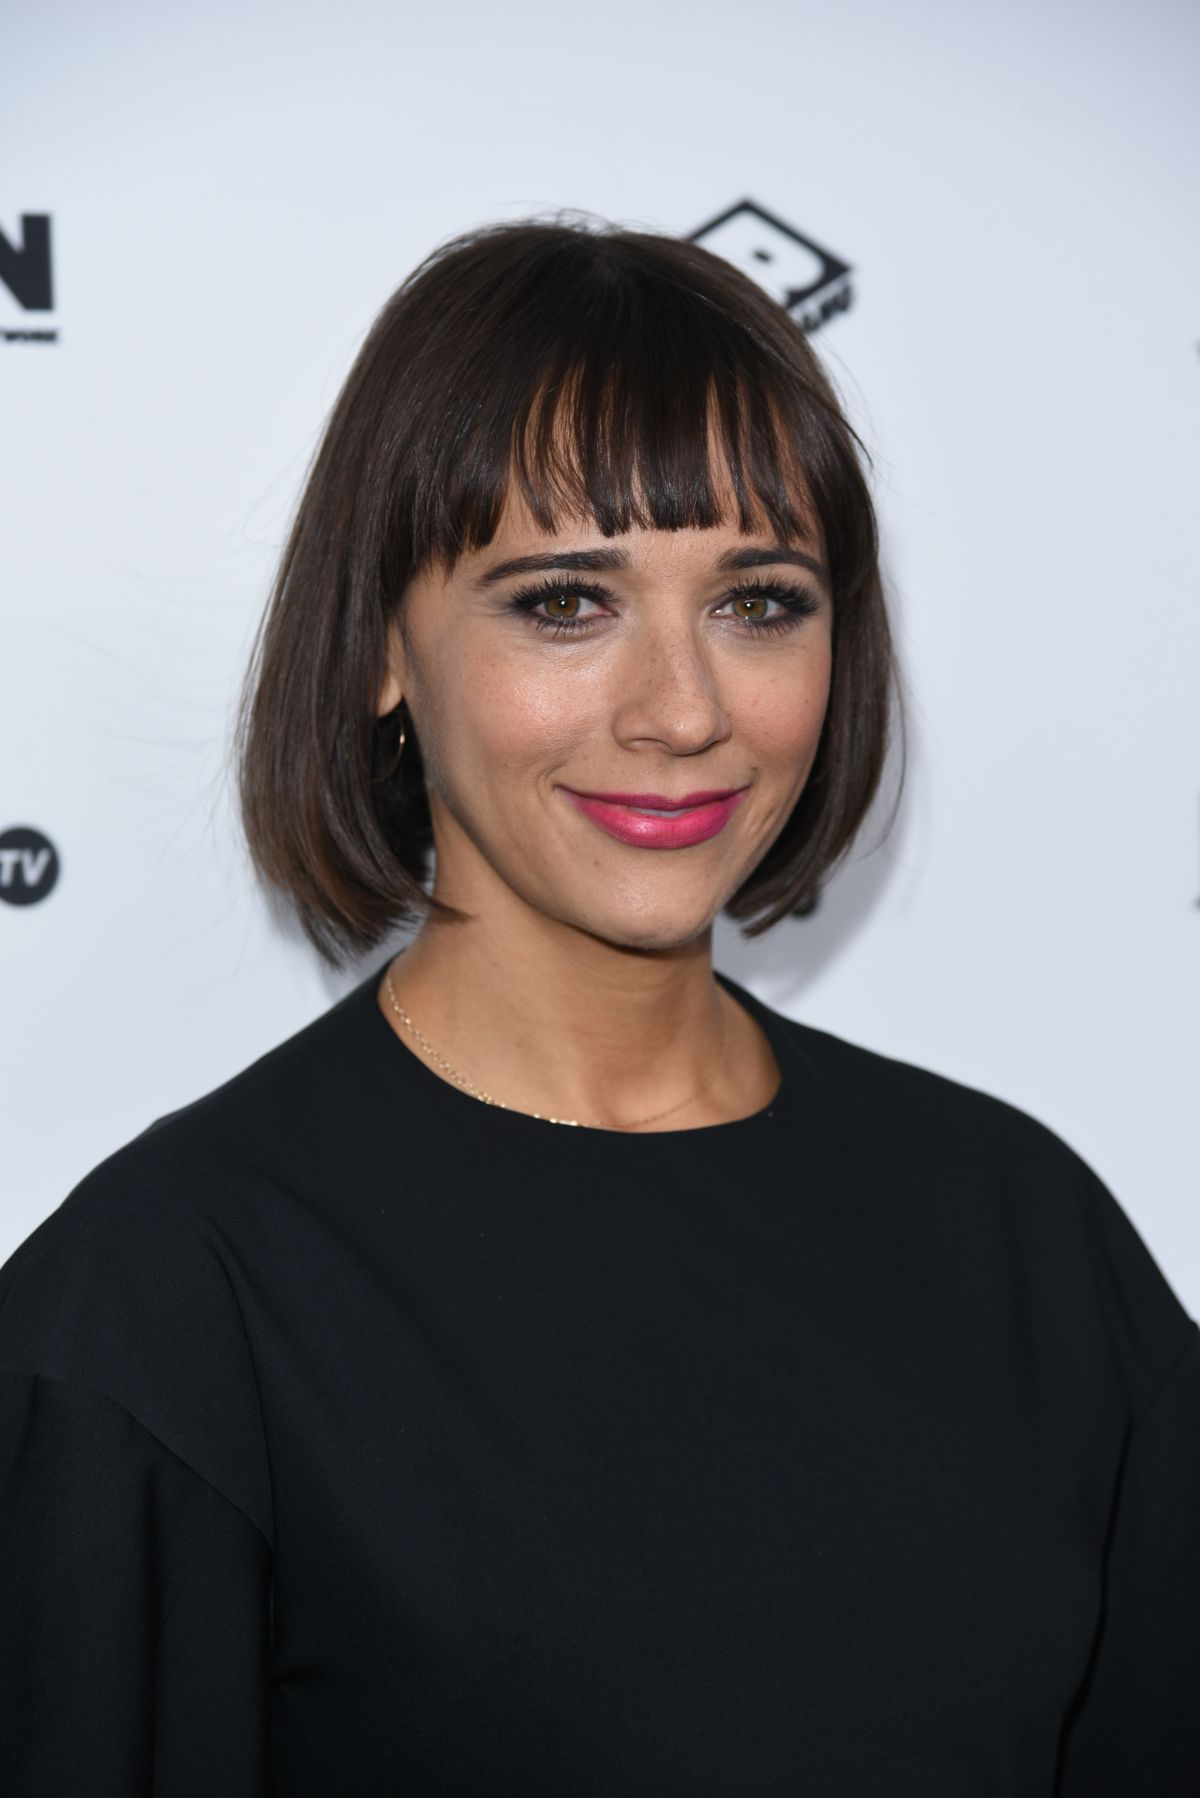 how tall is rashida jones